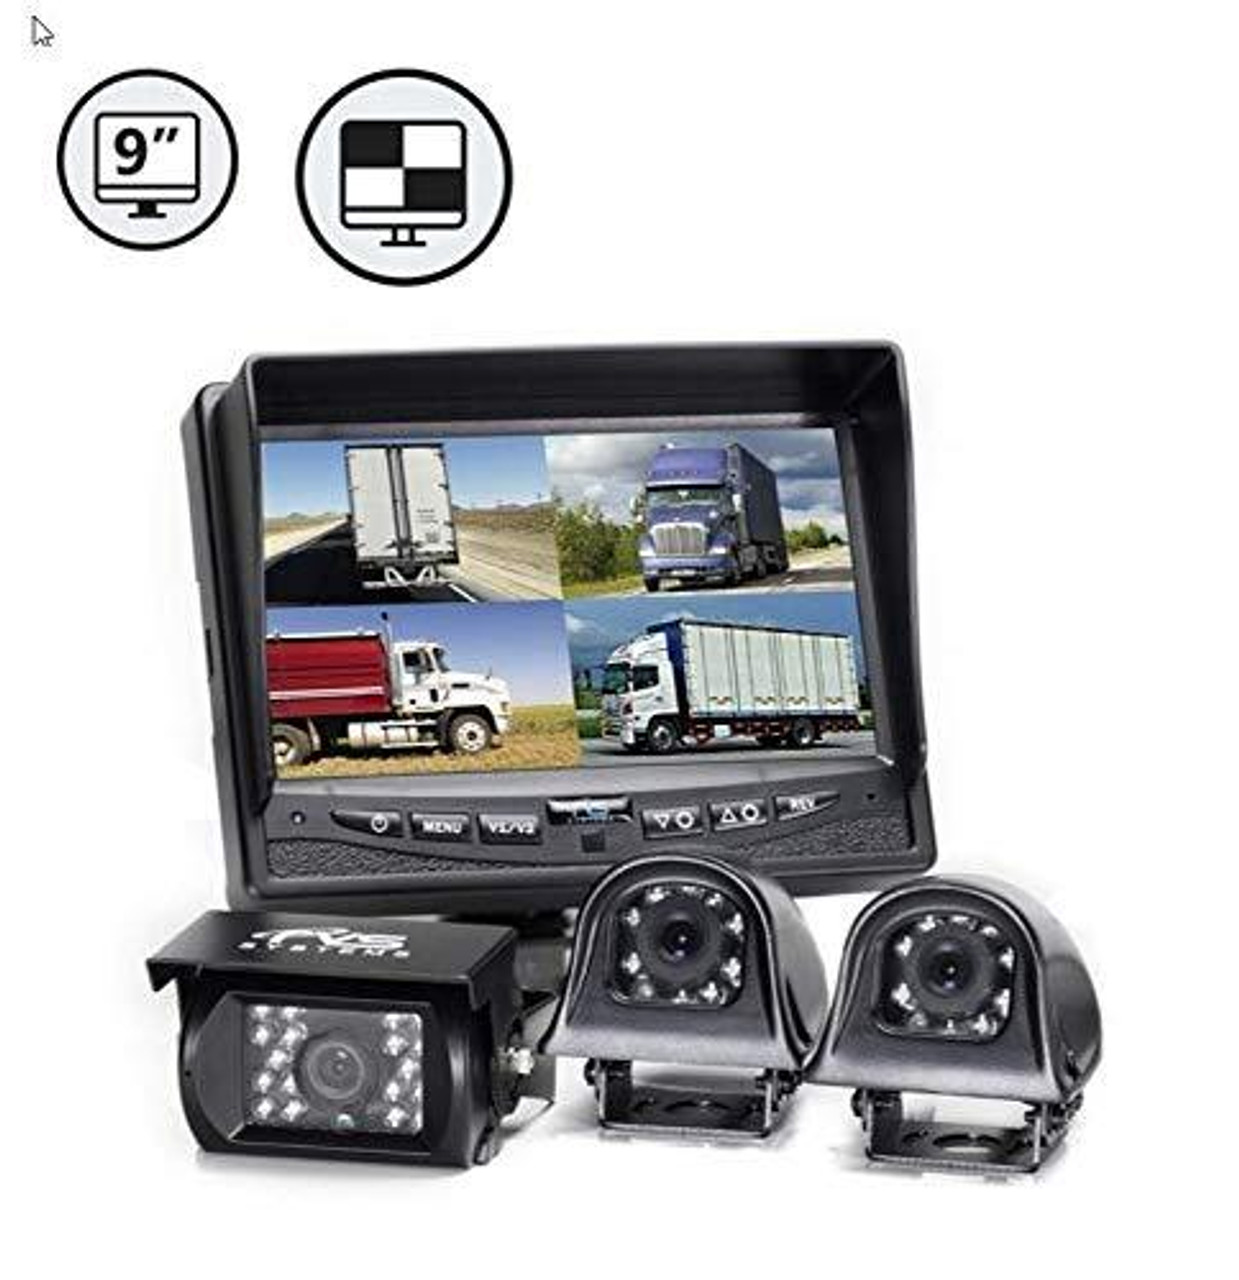 "9"" QV Display, 1 x Backup Camera, Both Side Cameras, 1 x 33' Cable, 2 x 16' Cables"